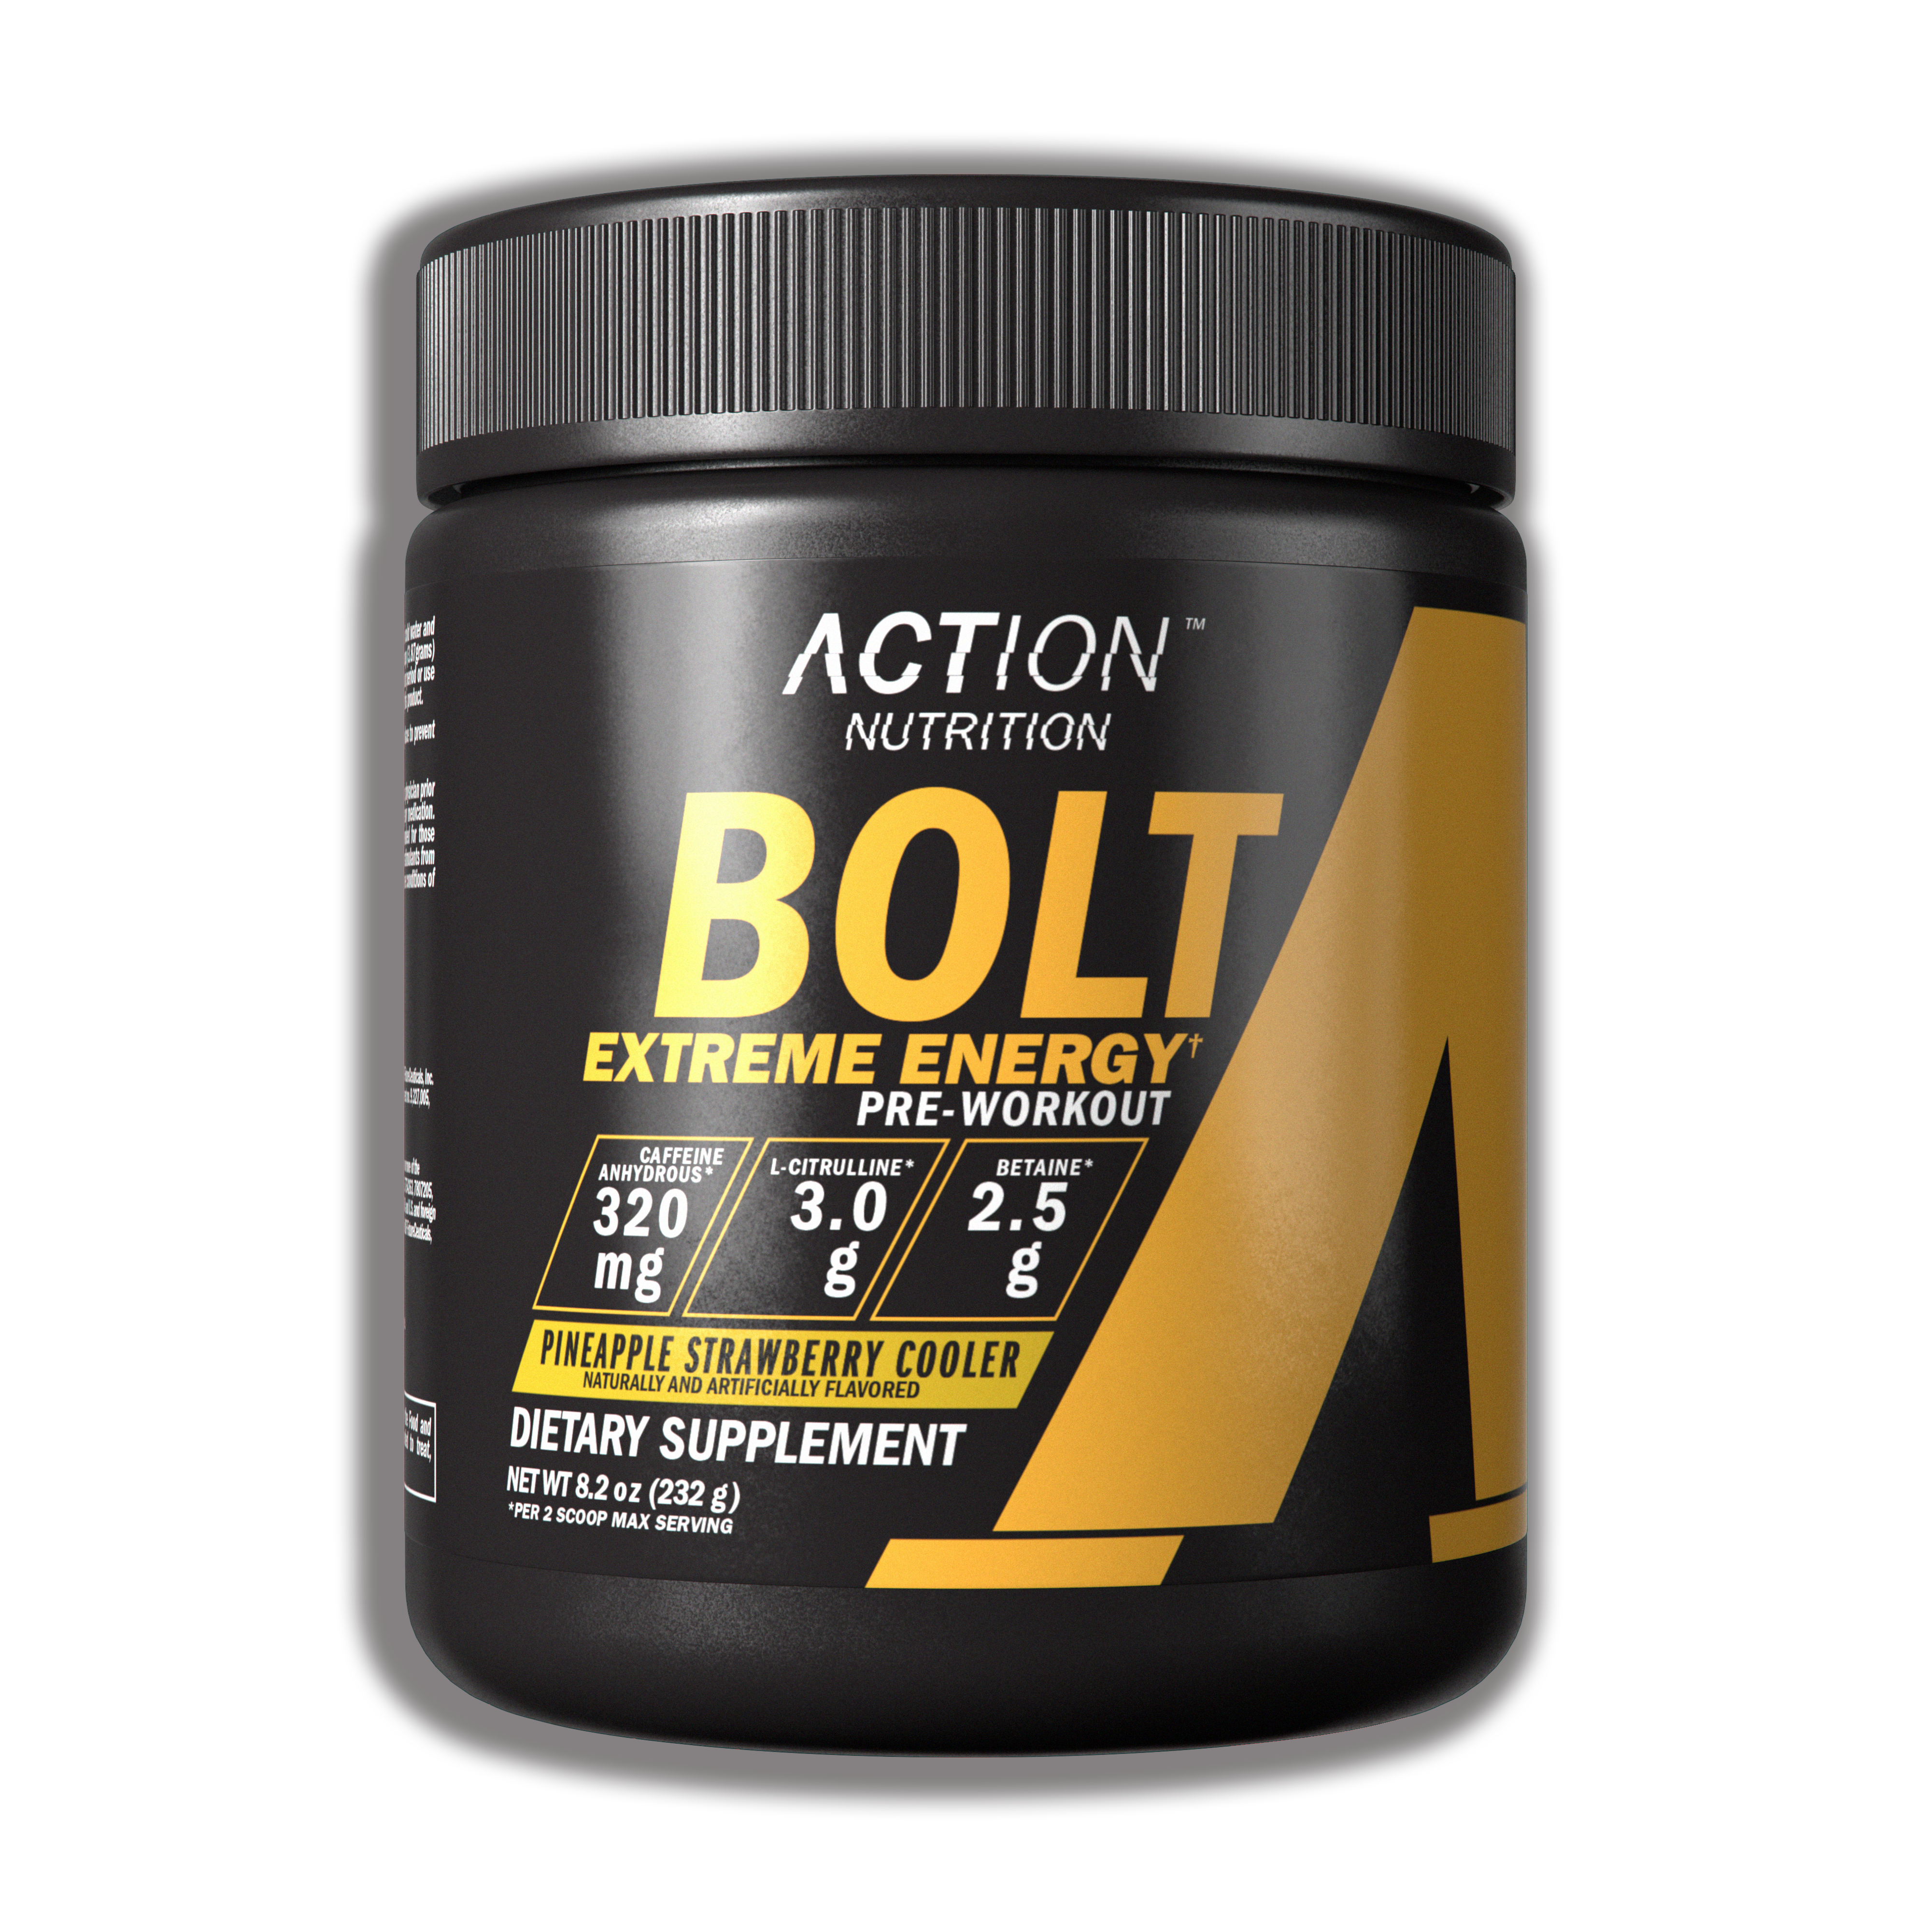 BOLT Extreme Energy Pre-Workout